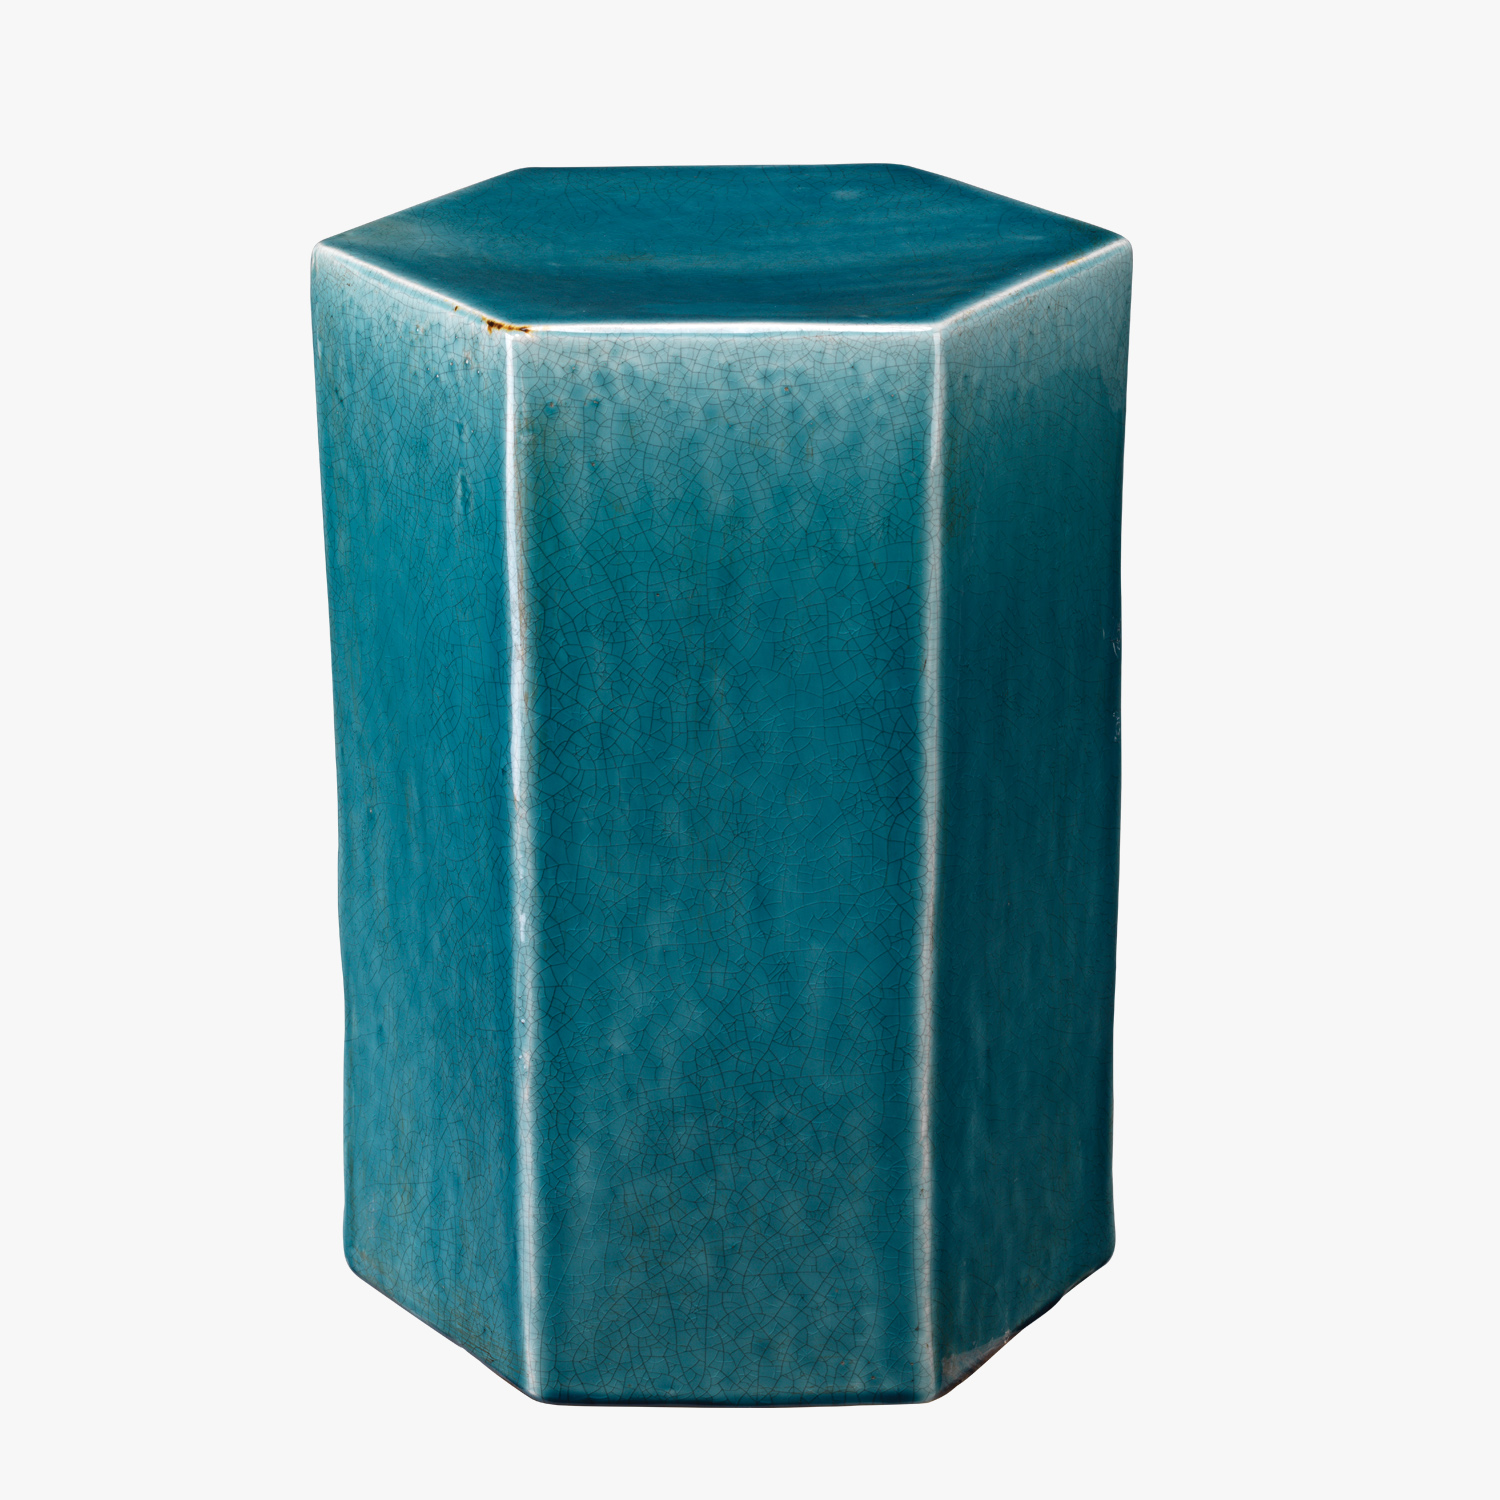 lorenzo azure ceramic side table accent tables dear keaton aqua blue decor design patio dining clearance black hexagon target office computer desk bright colored coffee inch